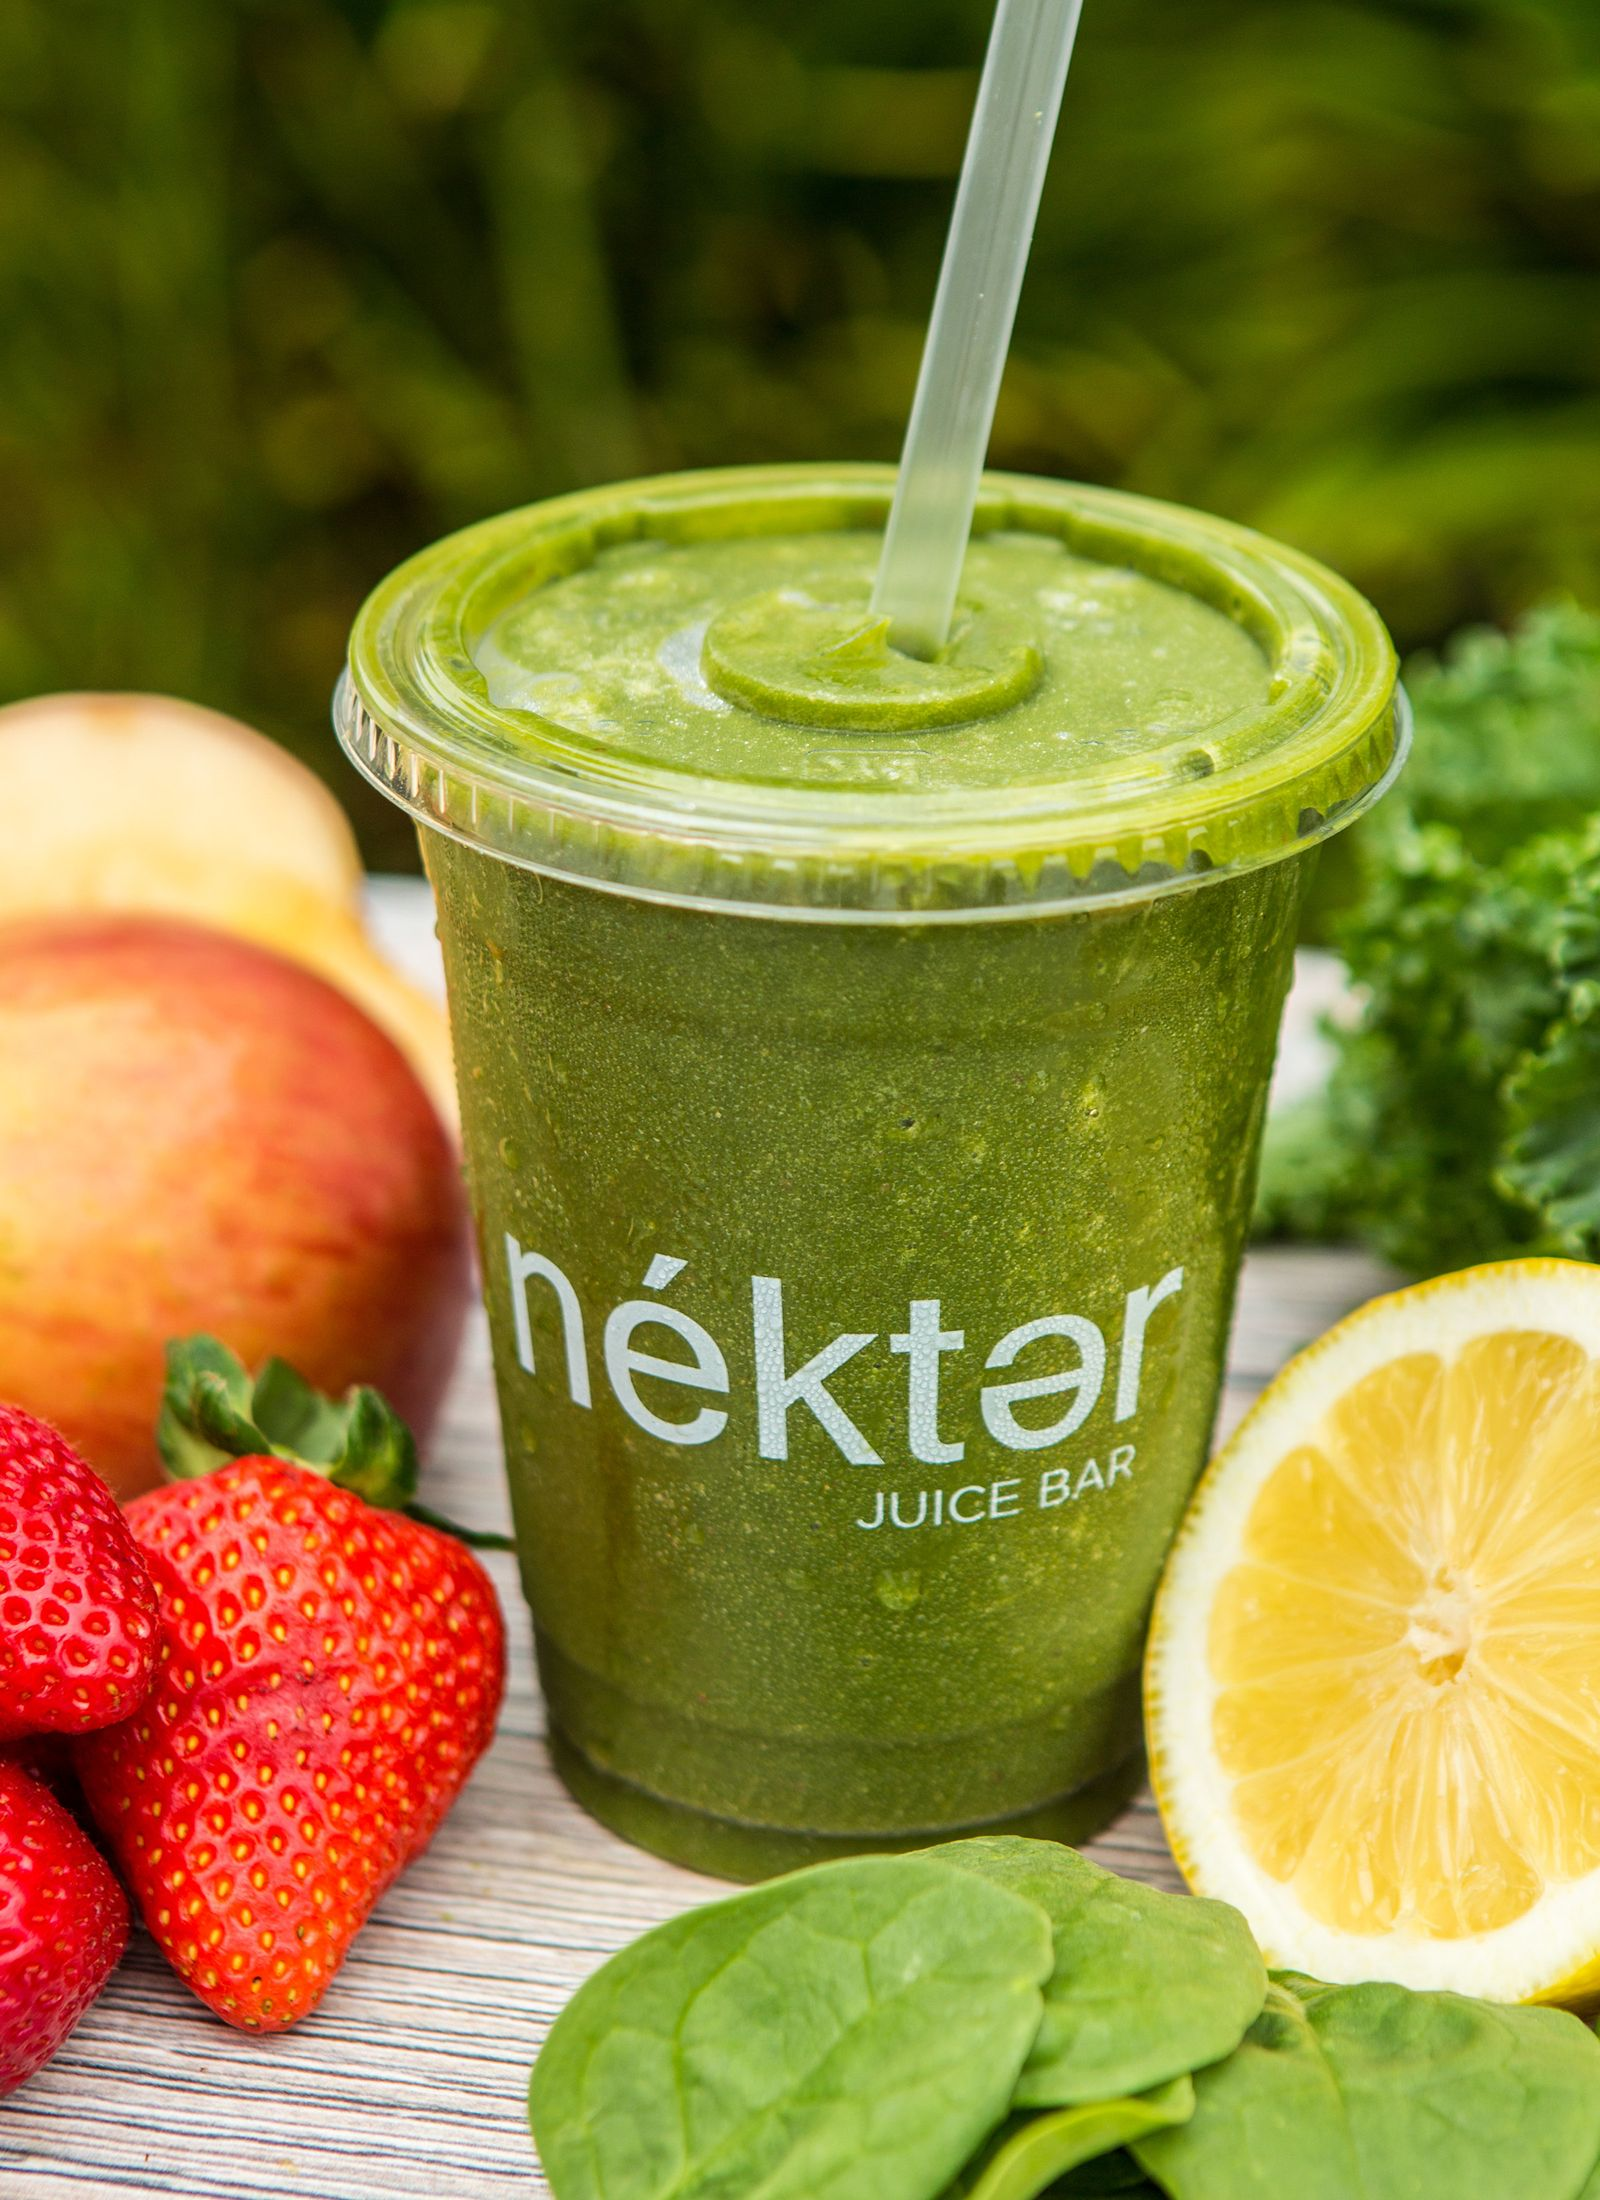 Nékter Juice Bar Counts Down to Its 100th Restaurant and First East Coast Locations Before Year's End